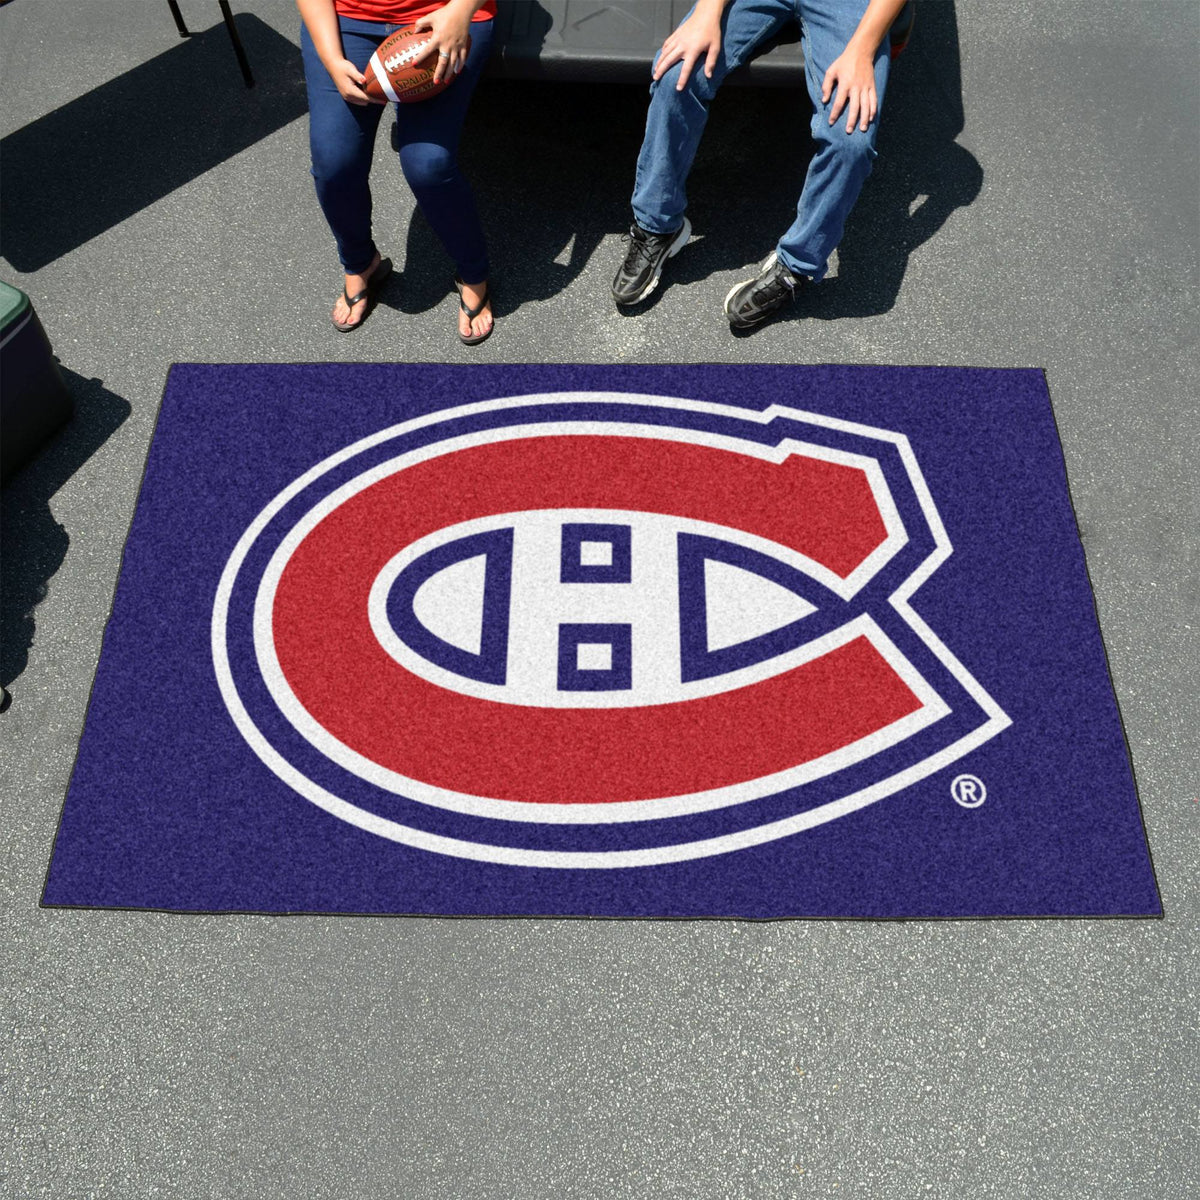 NHL - Ulti-Mat NHL Mats, Rectangular Mats, Ulti-Mat, NHL, Home Fan Mats Montreal Canadiens